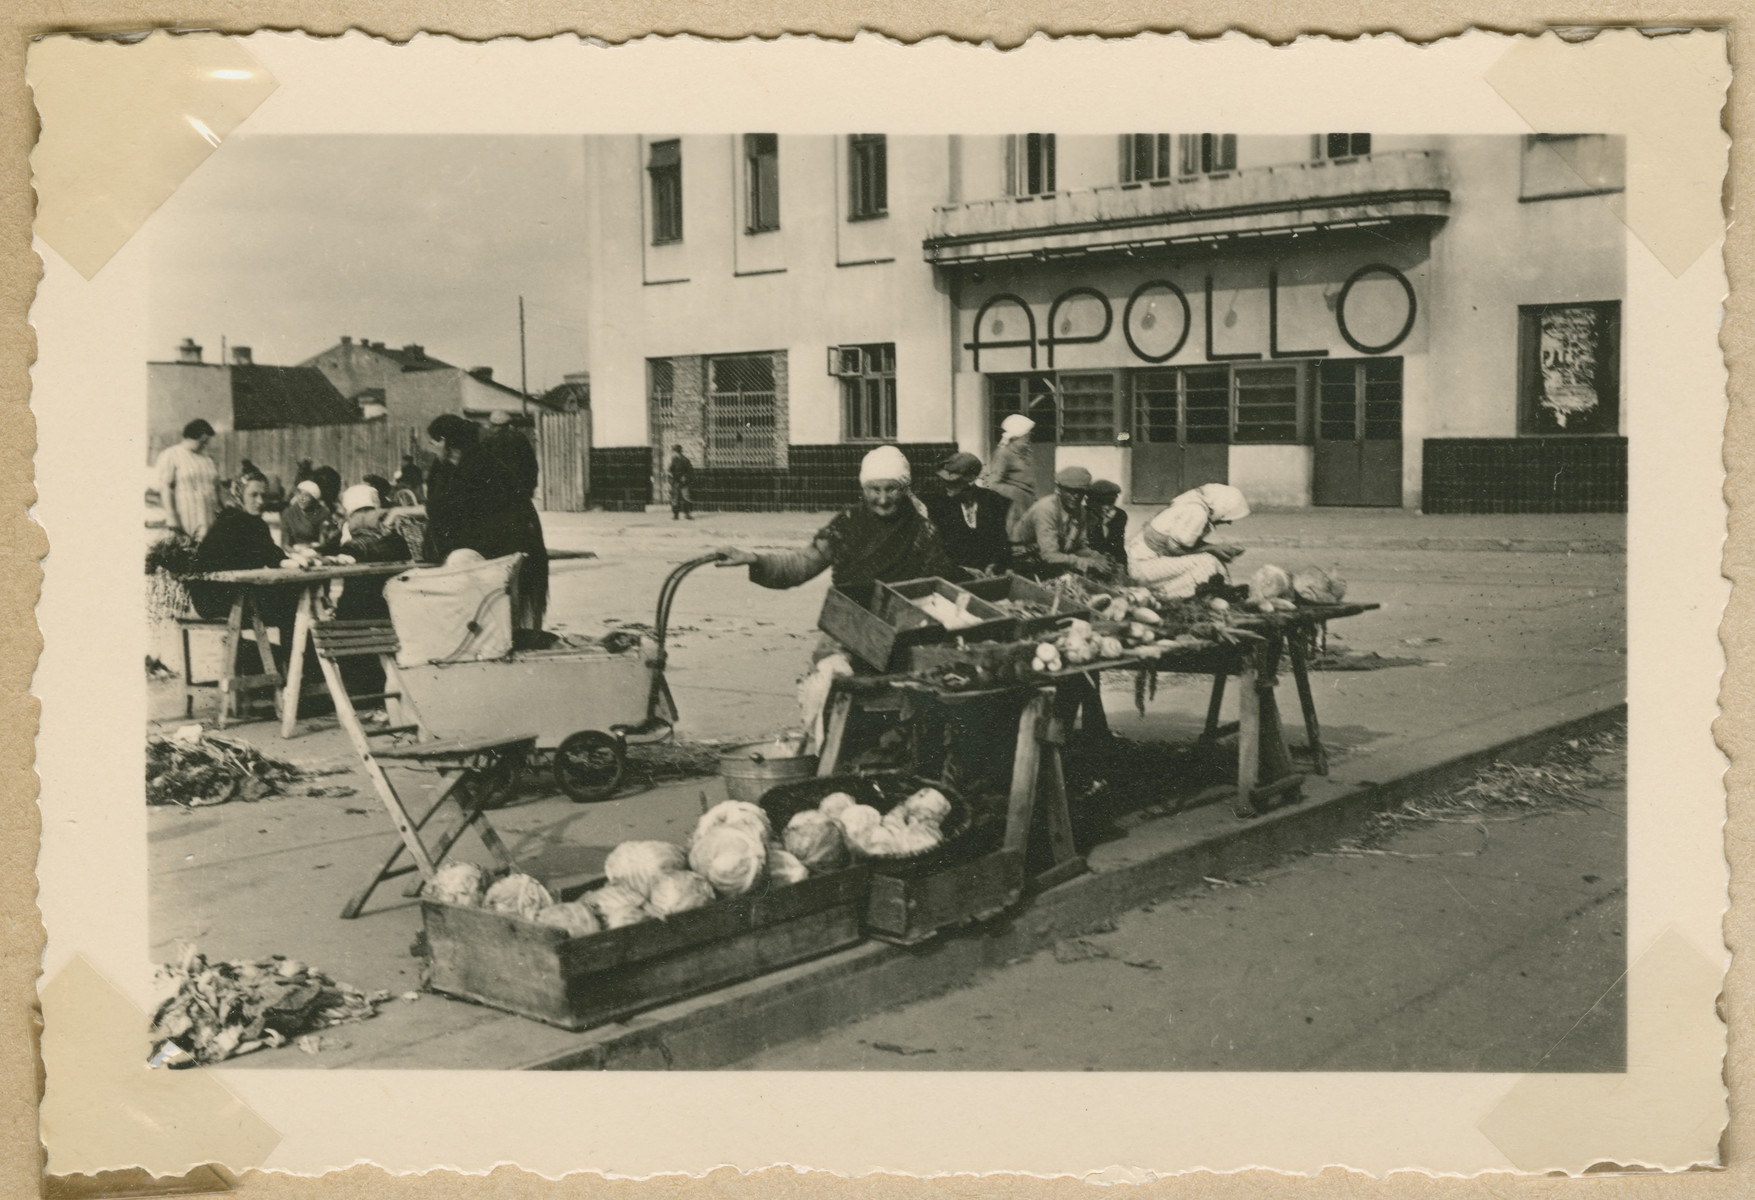 Polish farmers sell their produce in an outdoor market in Radom.